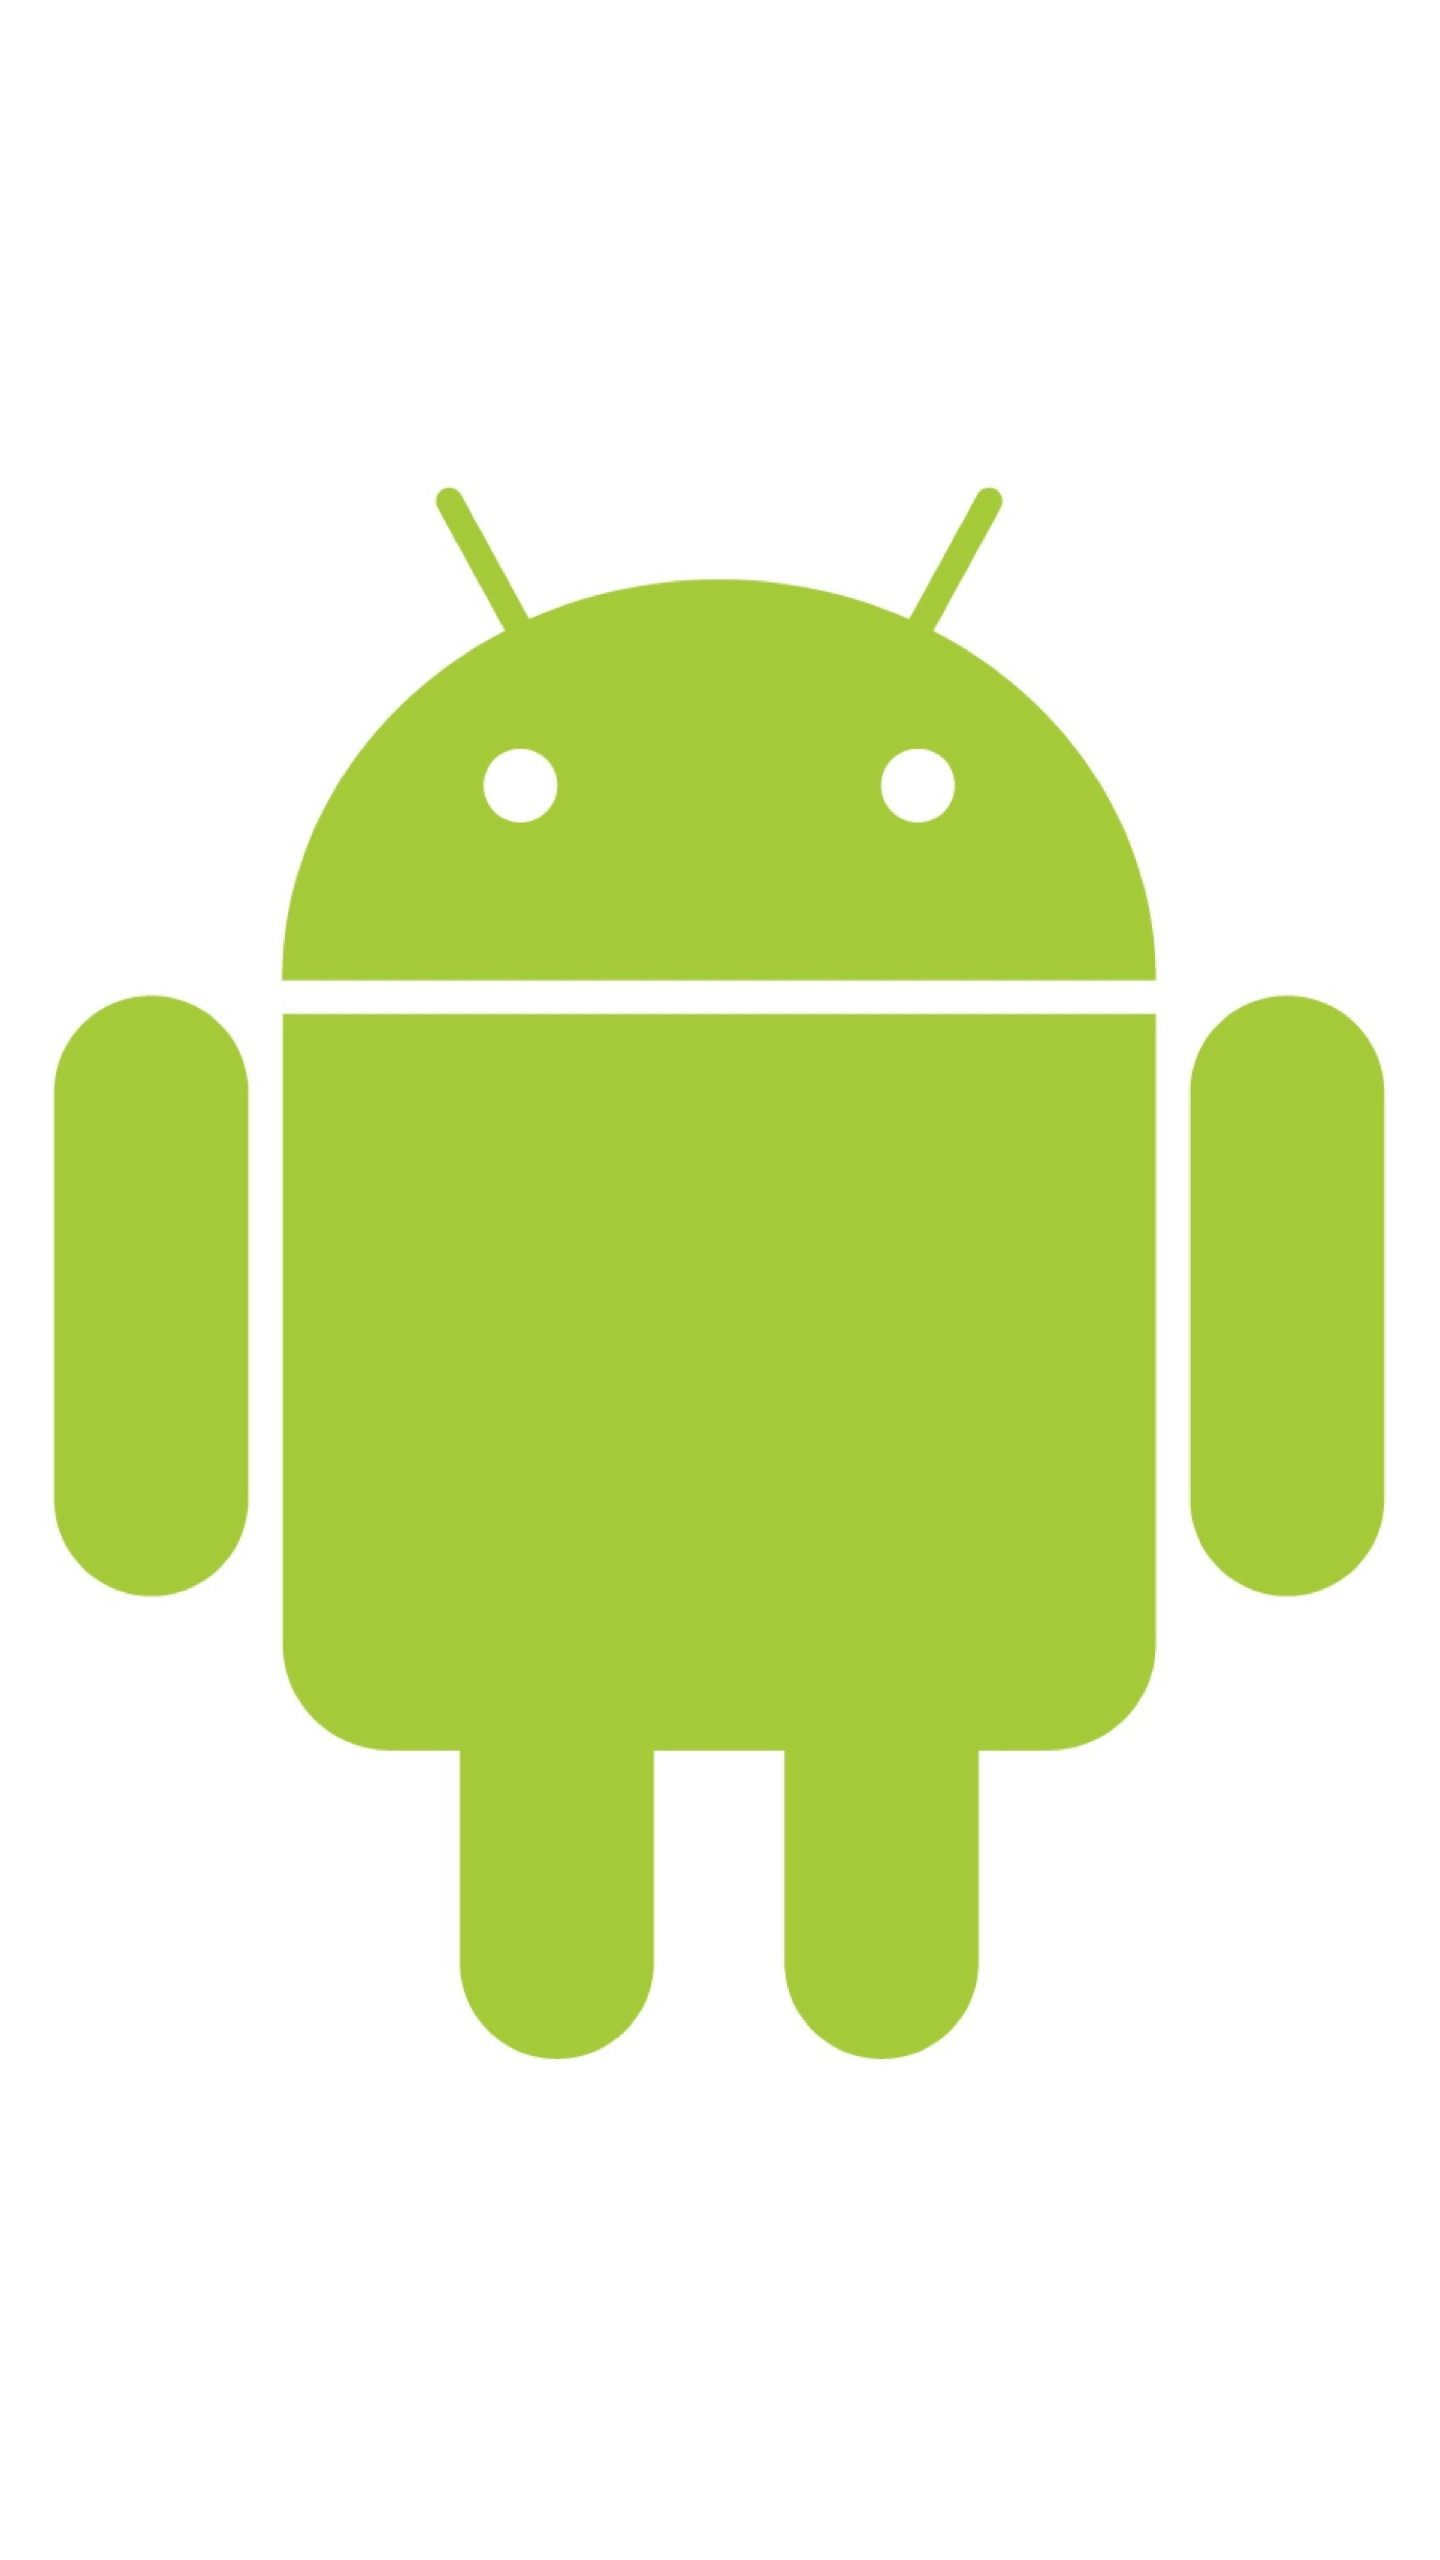 Android SmartPhone QHD 壁紙 0522